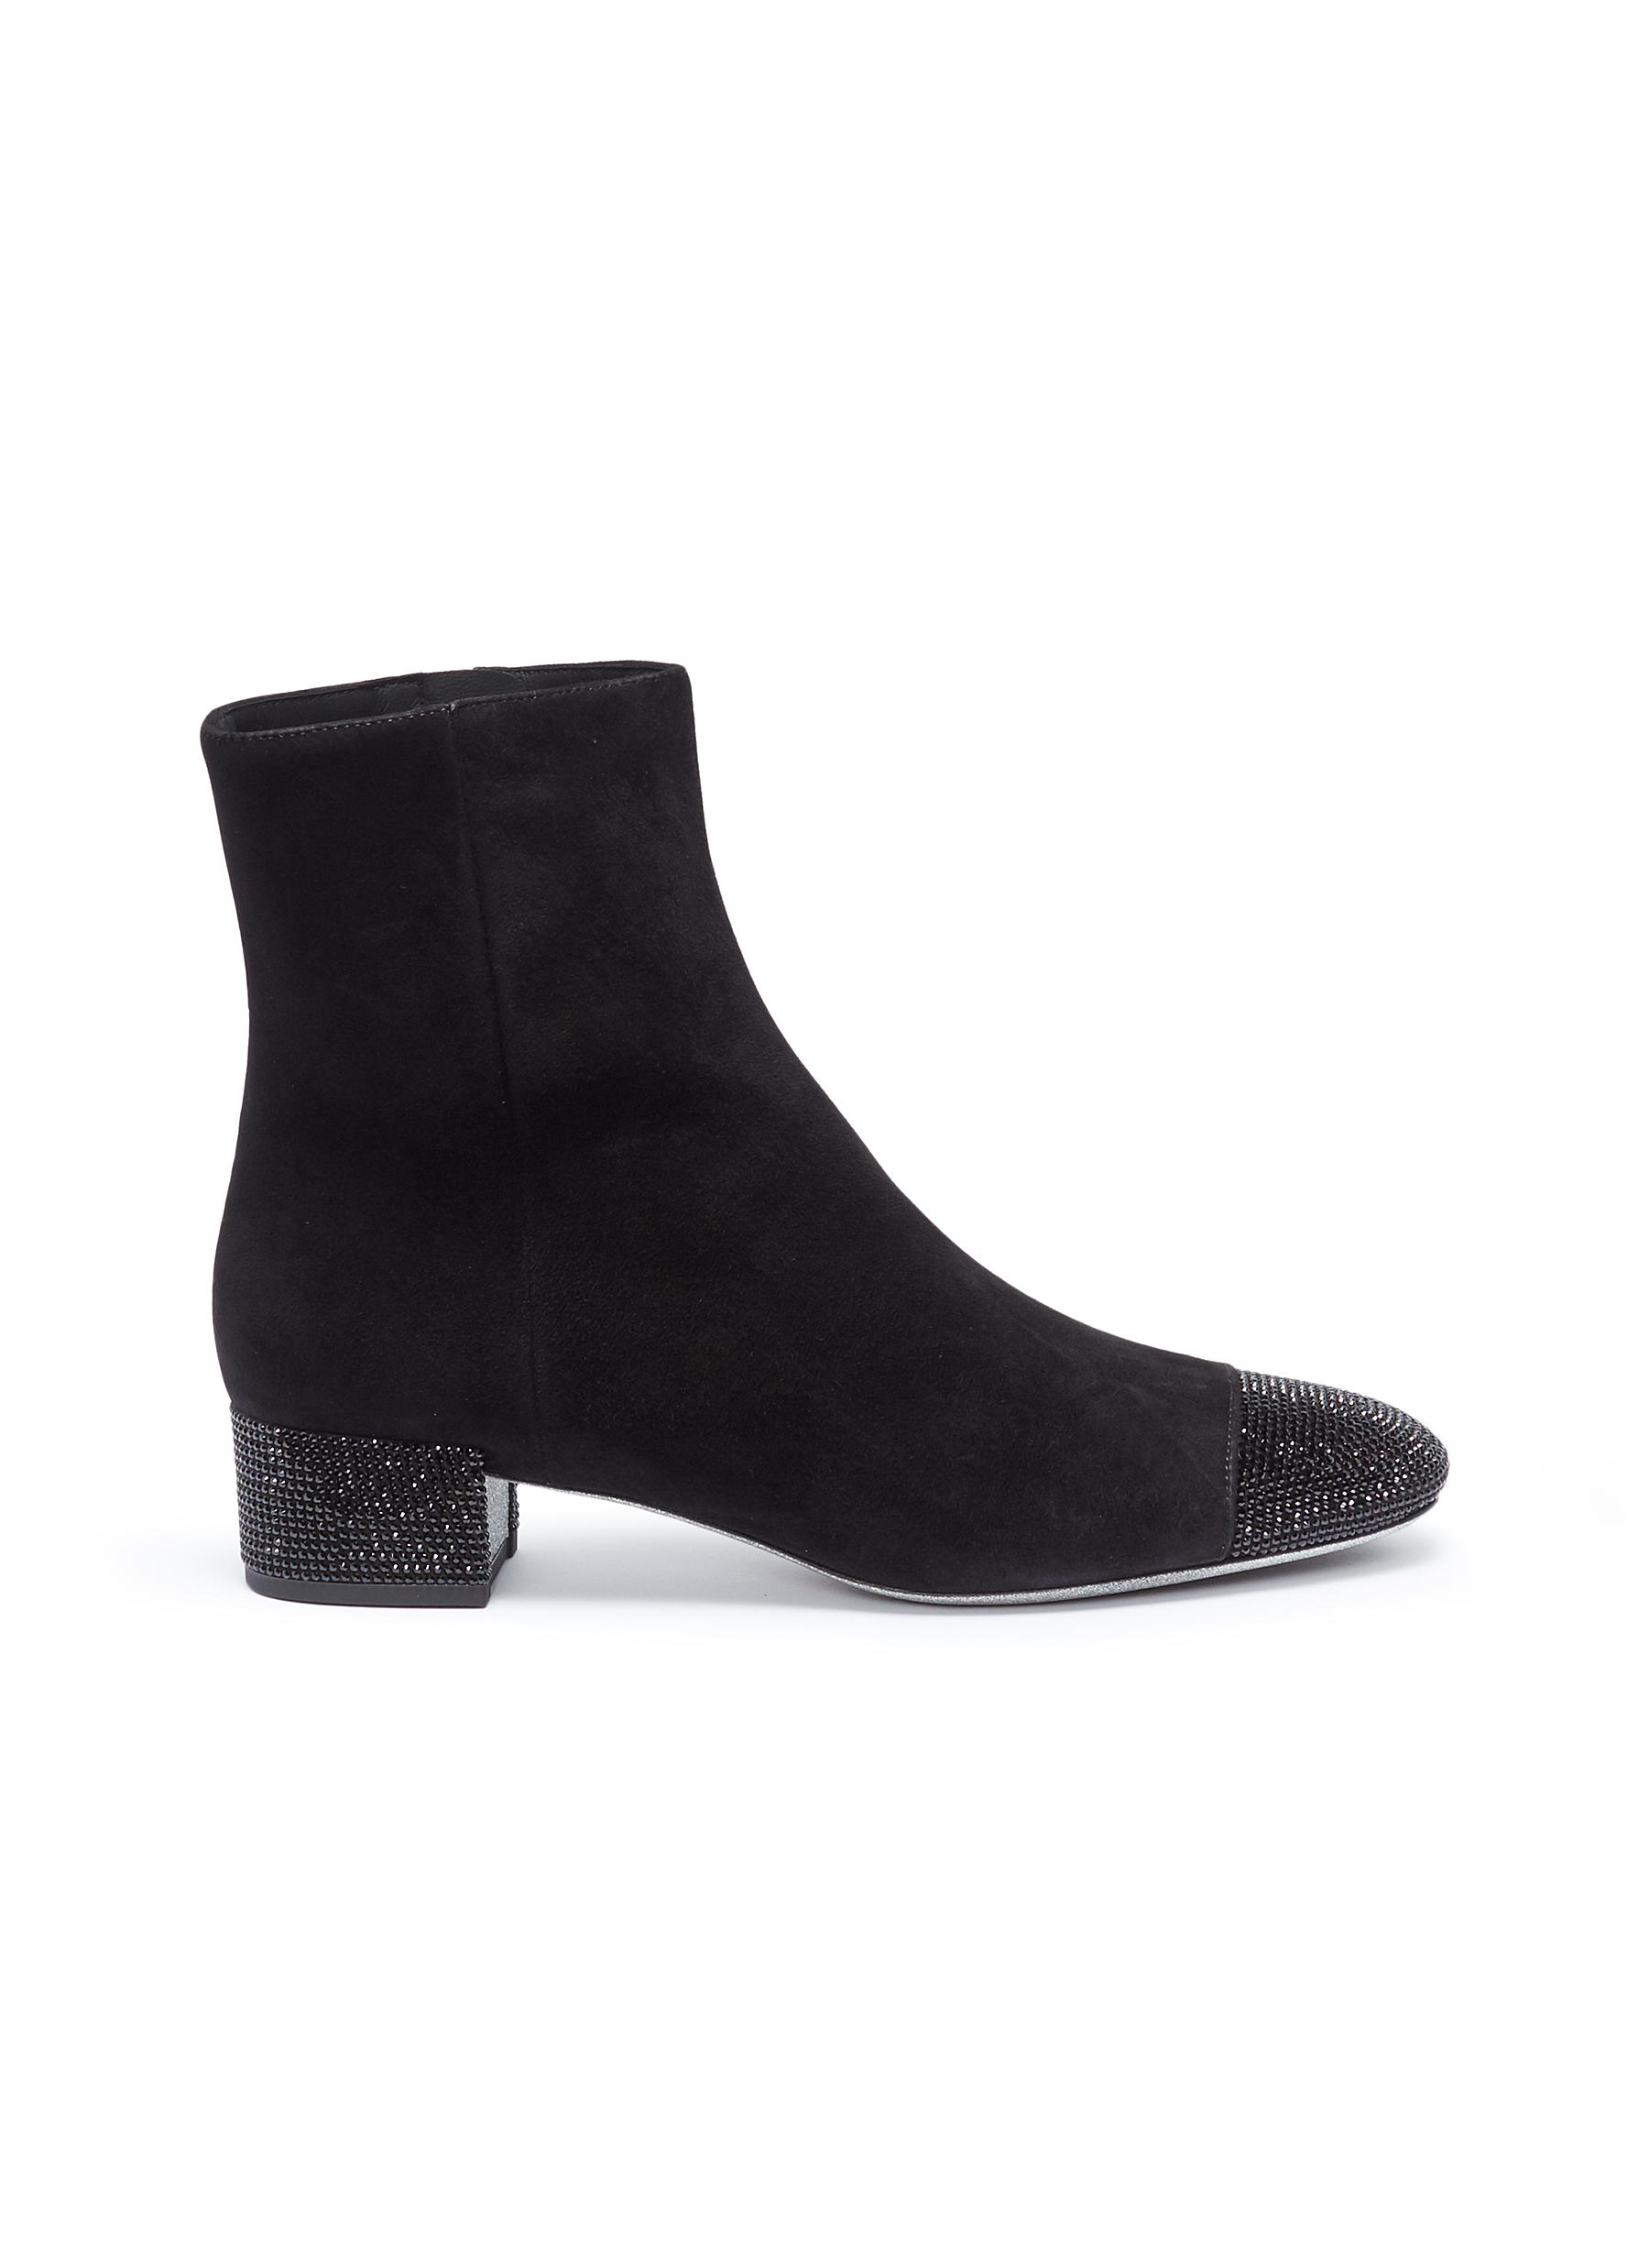 Strass toe suede ankle boots by René Caovilla